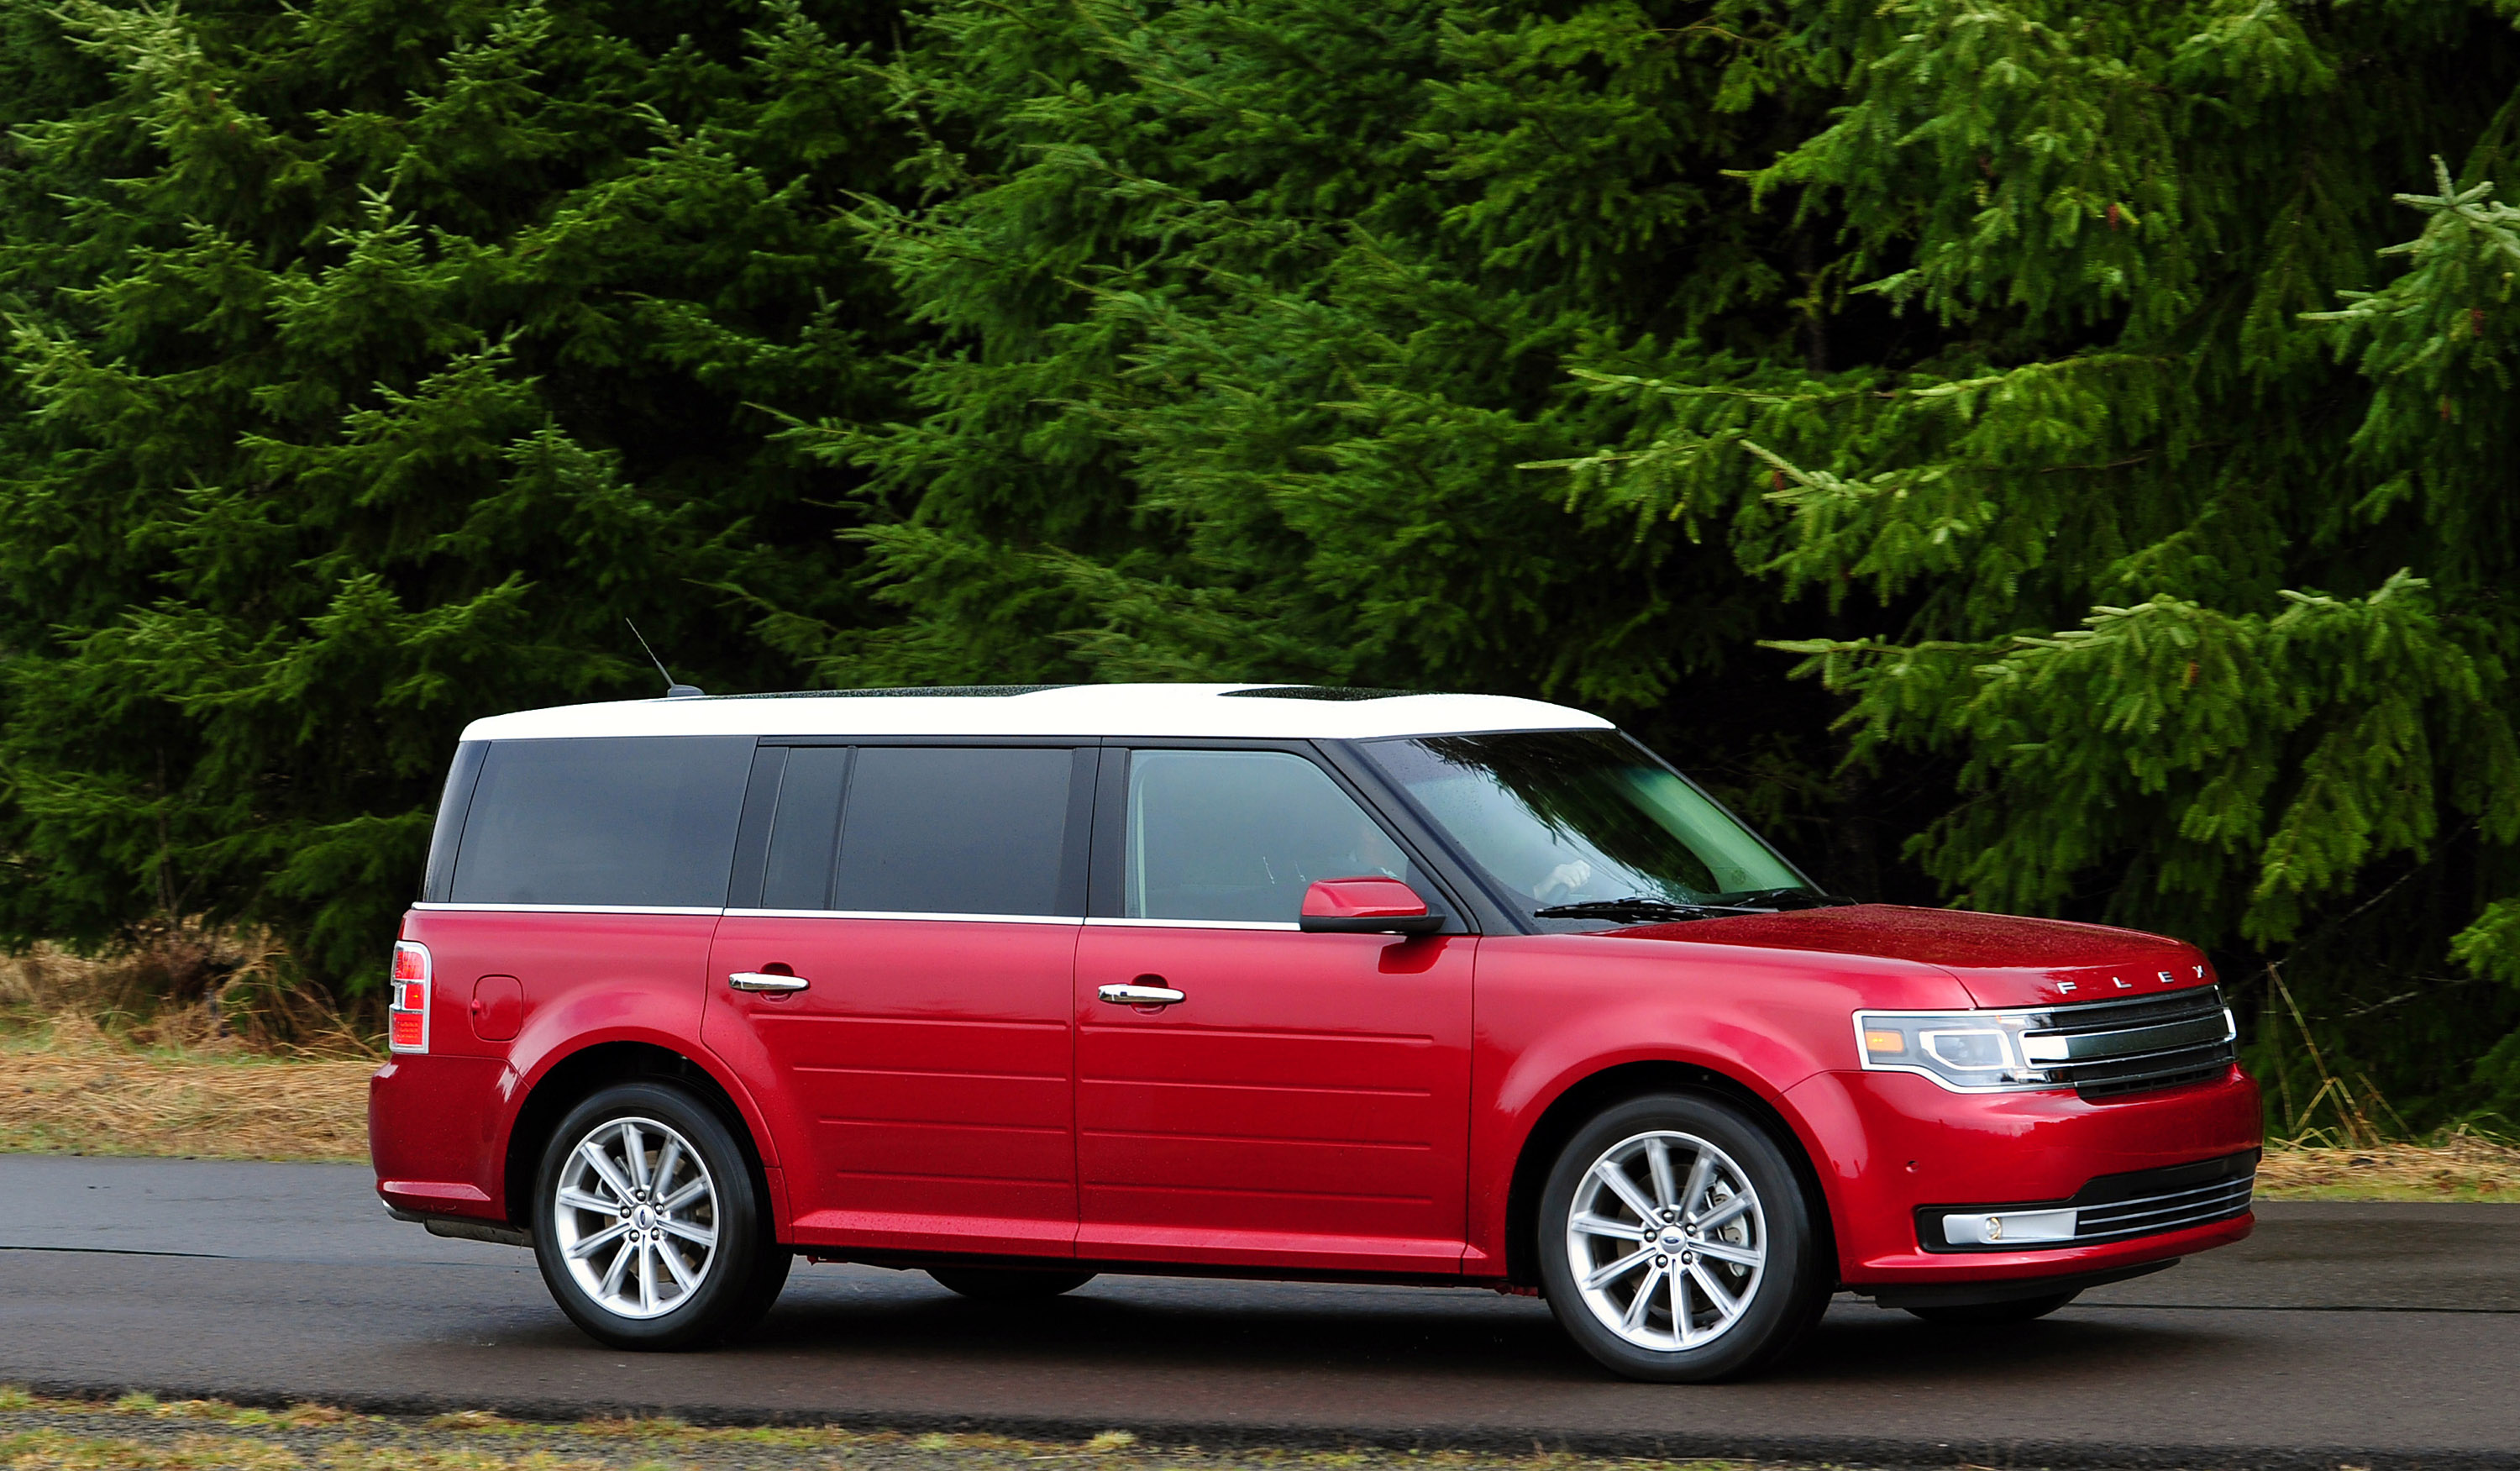 2013 Ford Flex Hd Pictures Carsinvasion Com